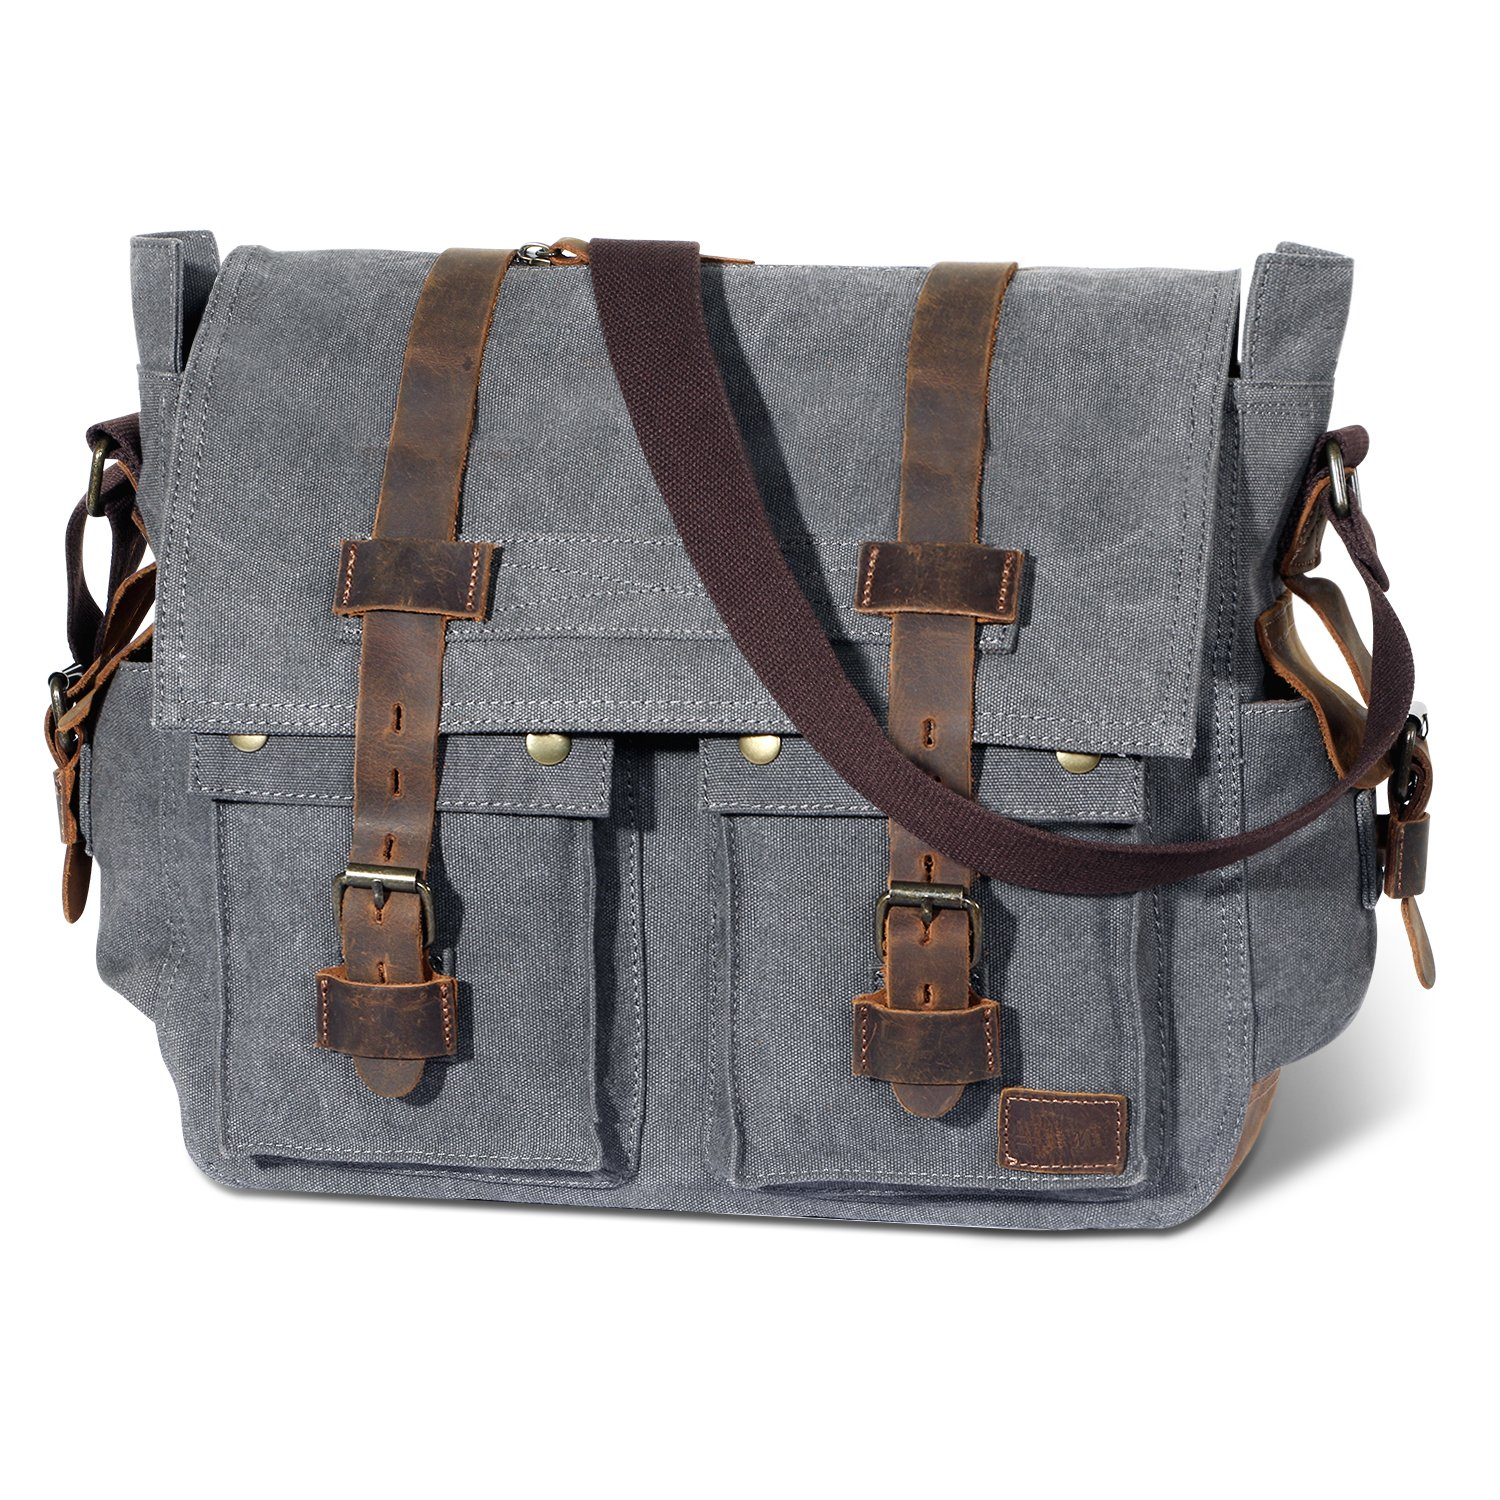 Lifewit 15.6-17.3 Men's Messenger Bag Vintage Canvas Leather Military Shoulder Laptop Bags LF210809GY